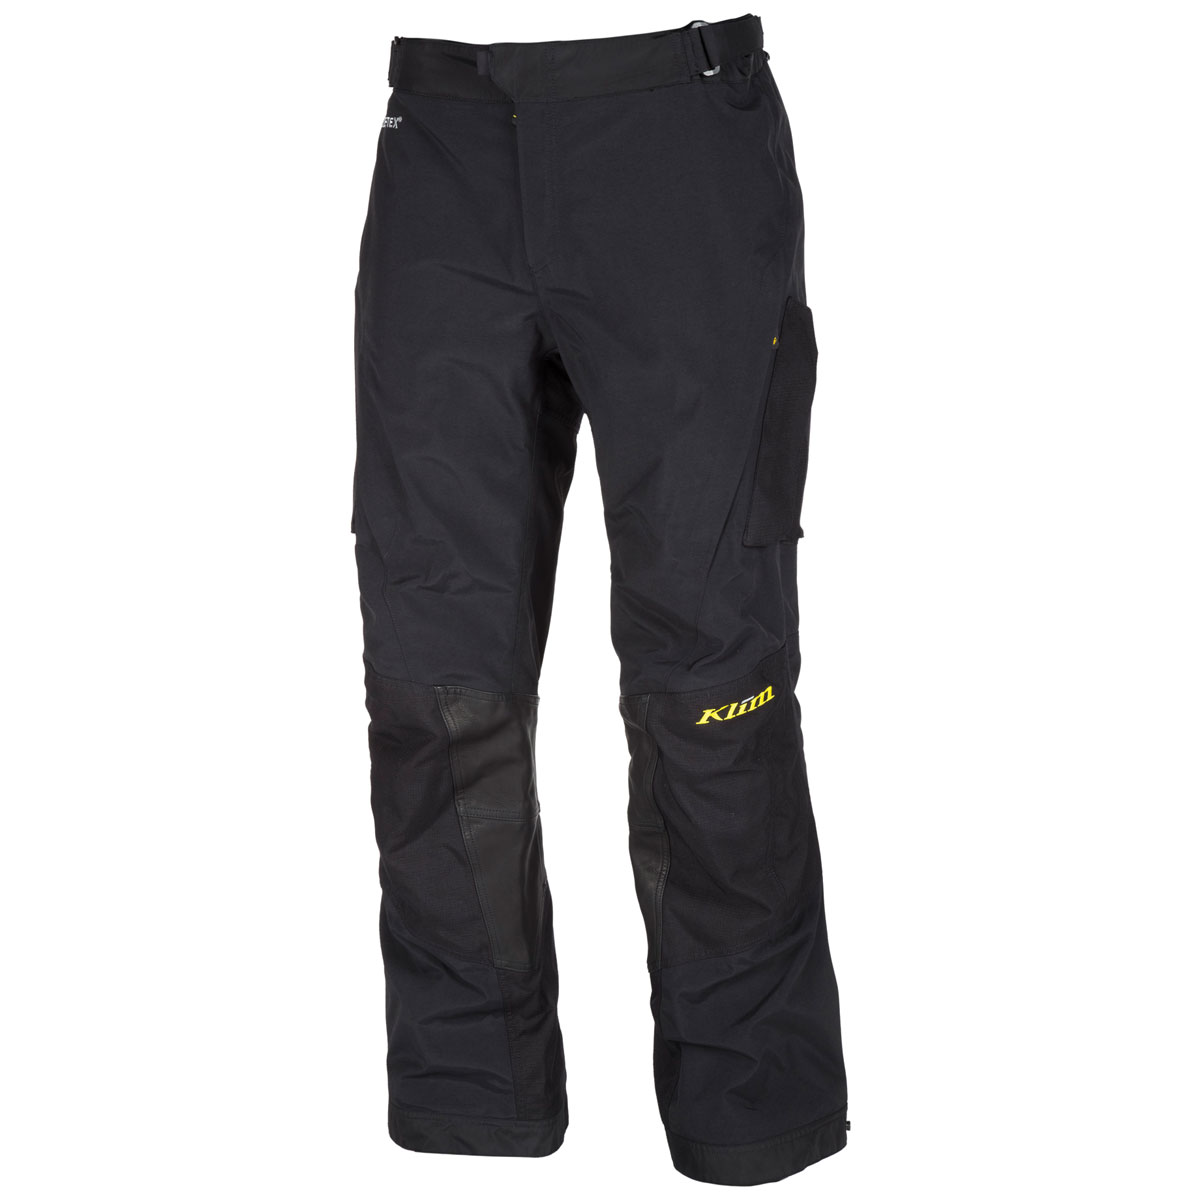 Klim Carlsbad Black Riding Pants